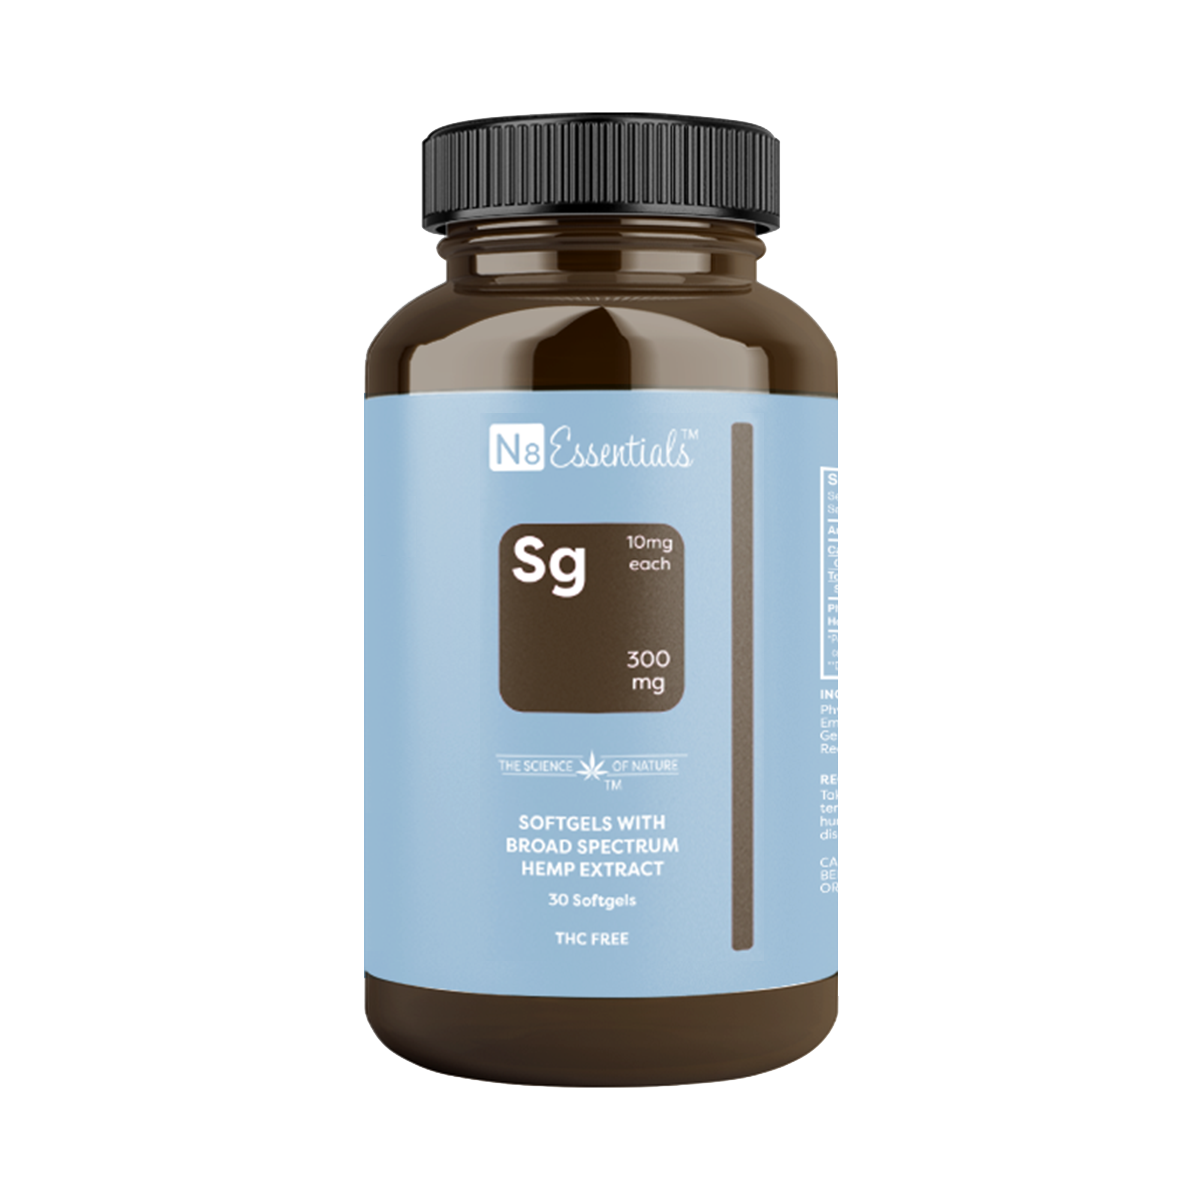 N8 Broad Spectrum Softgels 10mg